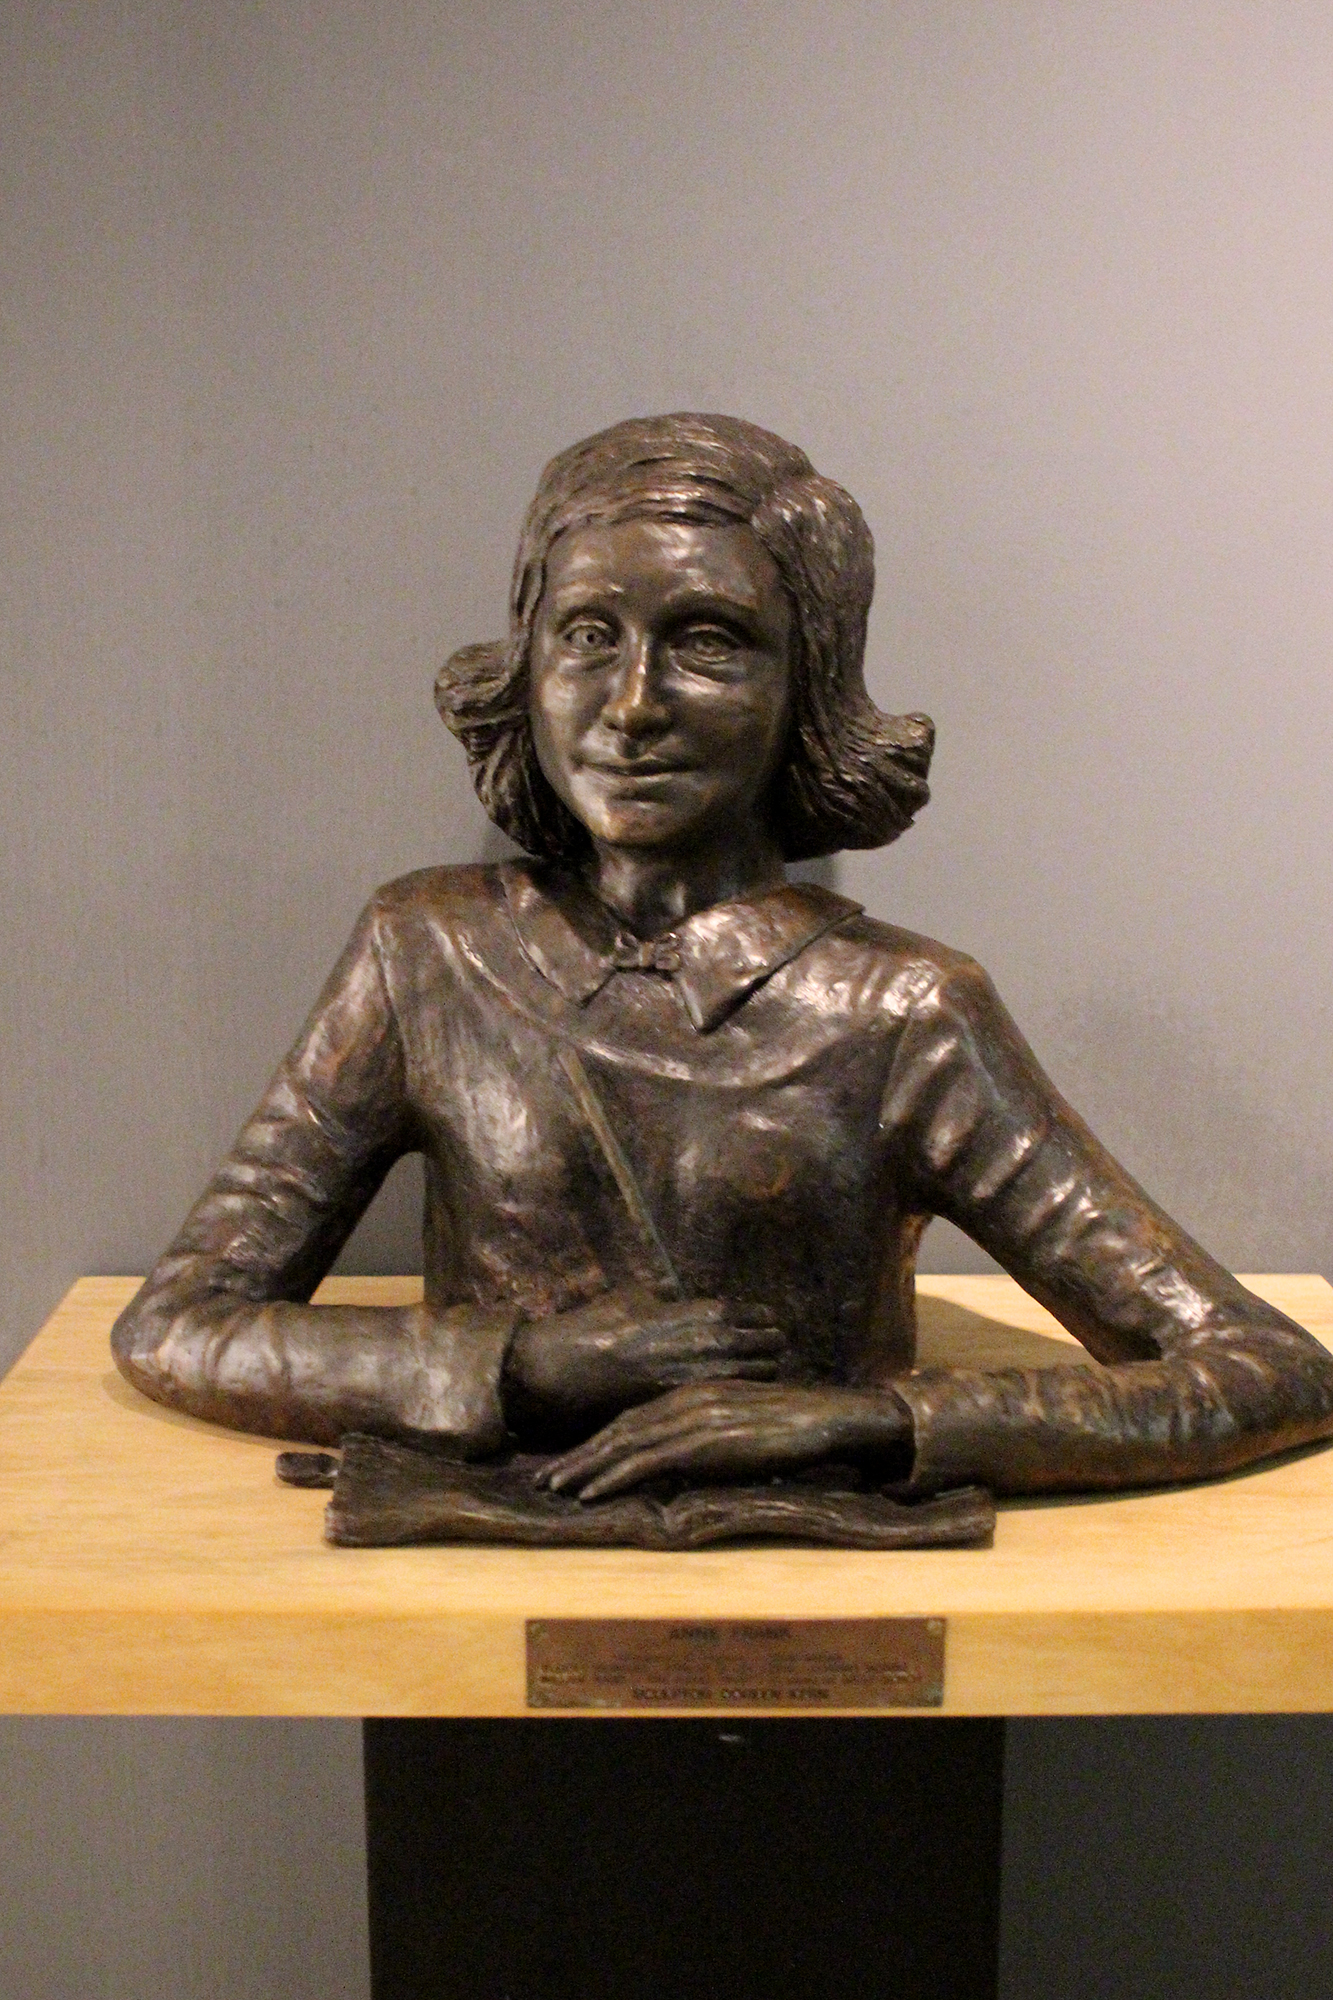 Bust of Anne Frank (whom my mother says is the spitting-image of my great-grandma Mary) in Ghetto Fighters' House, the first Holocaust museum, Israel. Photography by Geena Matuson @geenamatuson #thegirlmirage.